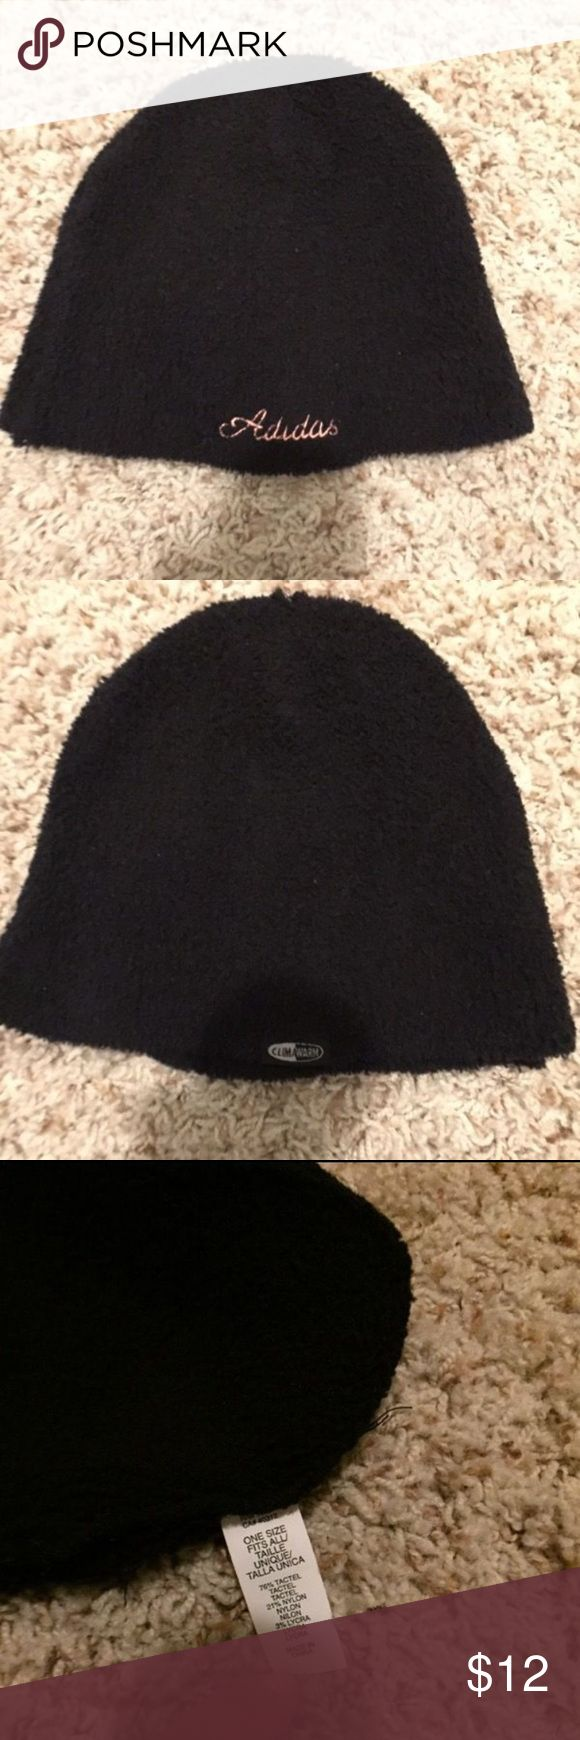 Adidas beanie Winter climate beanie. Great condition Accessories Hats